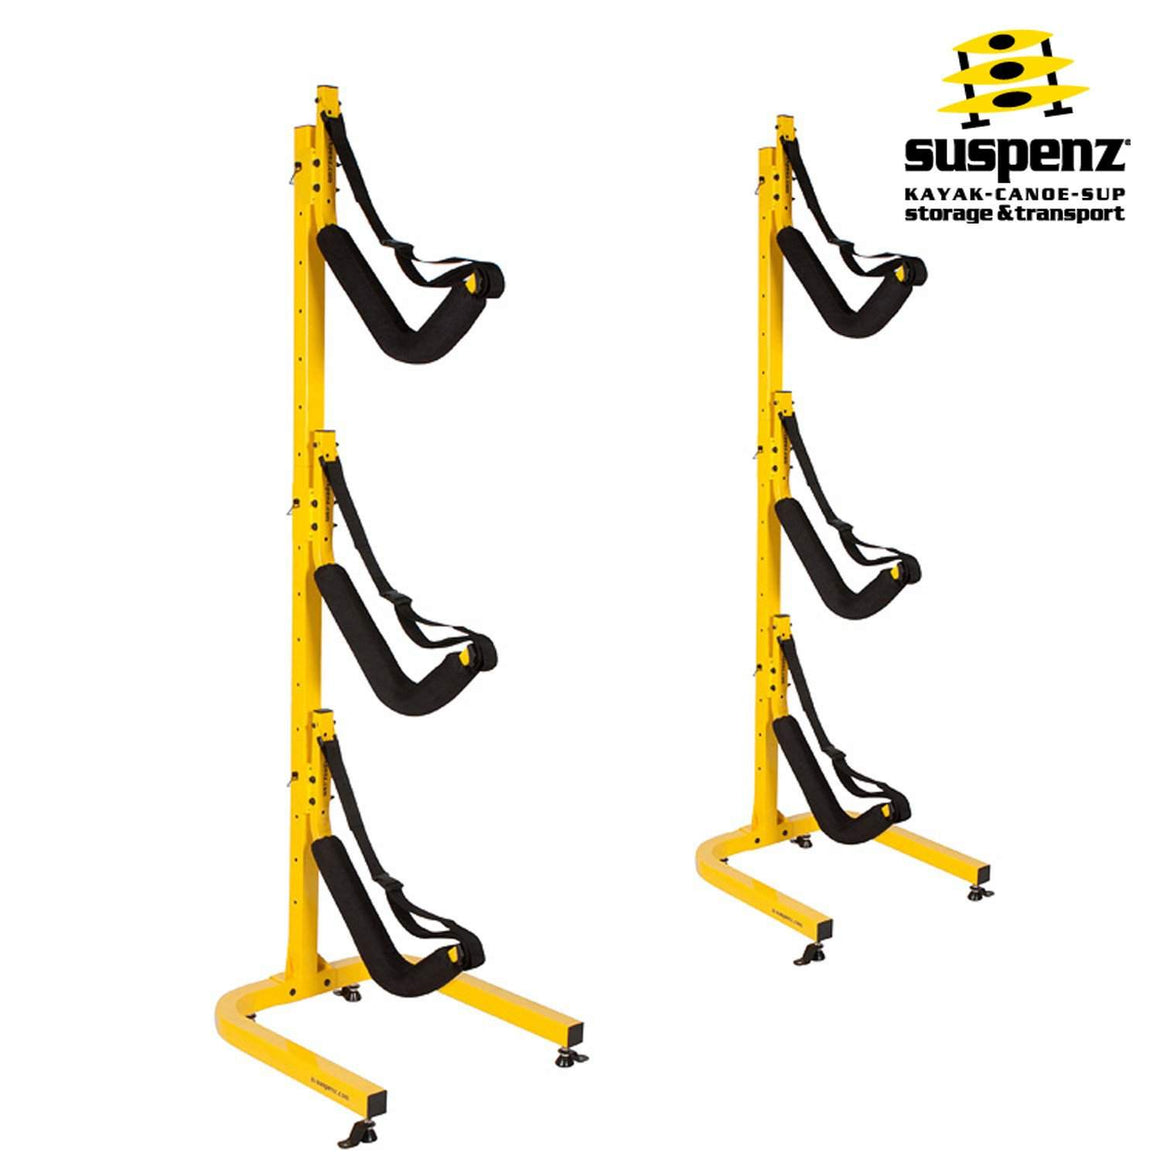 EZ 3-Boat Free-Standing Storage Rack - also available in BLACK!